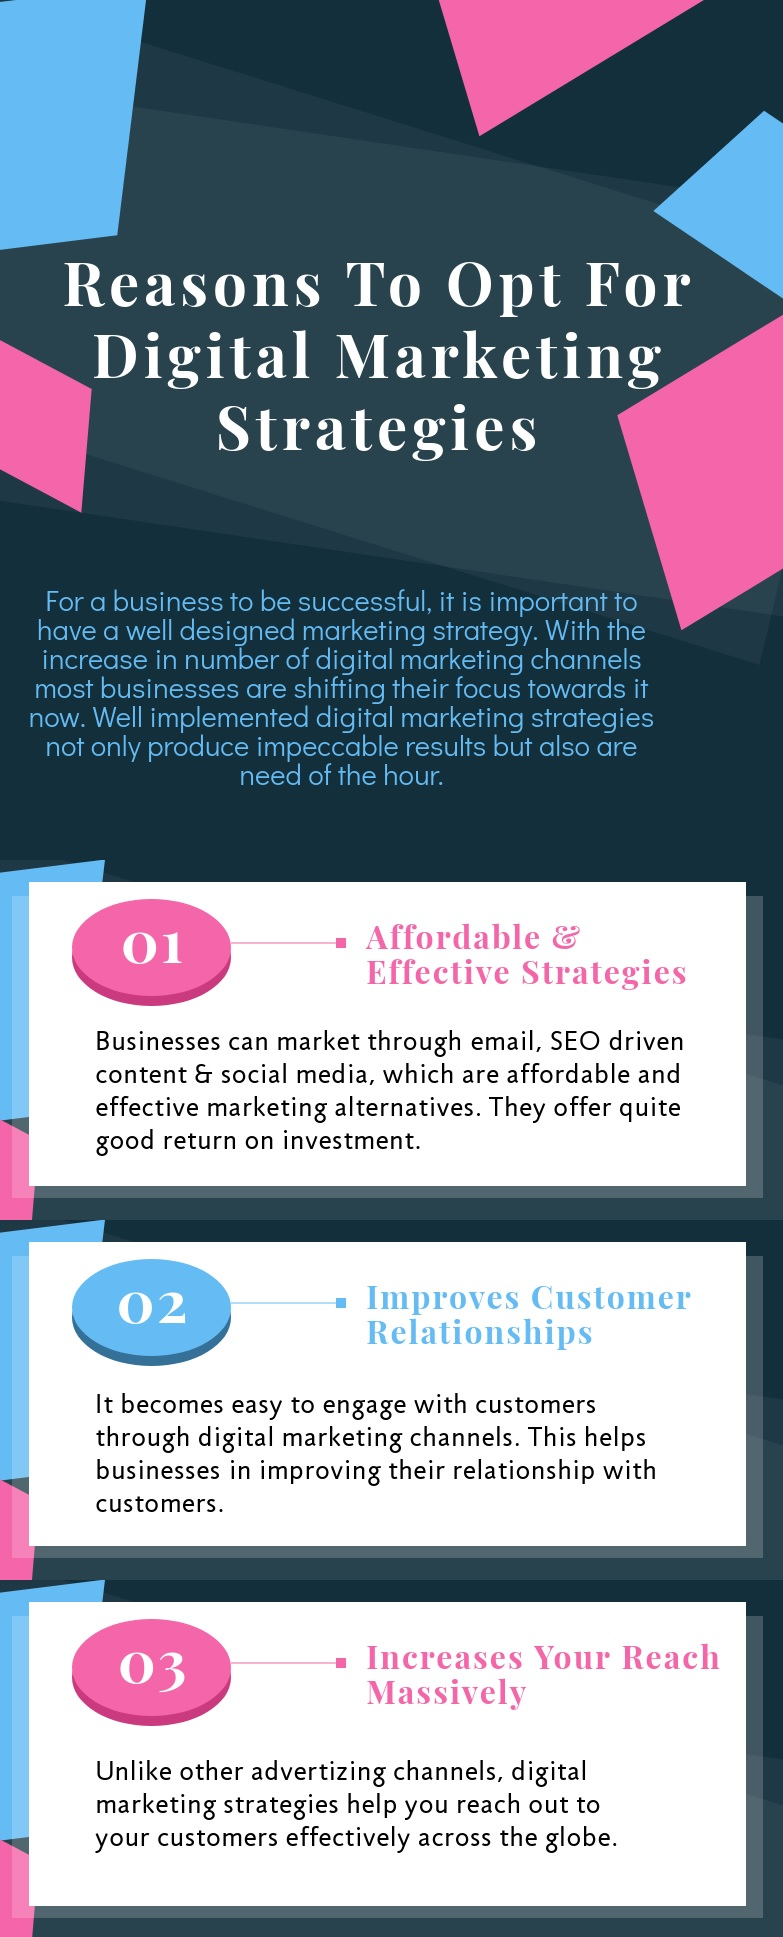 Reasons-To-Opt-For-Digital-Marketing-Strategies